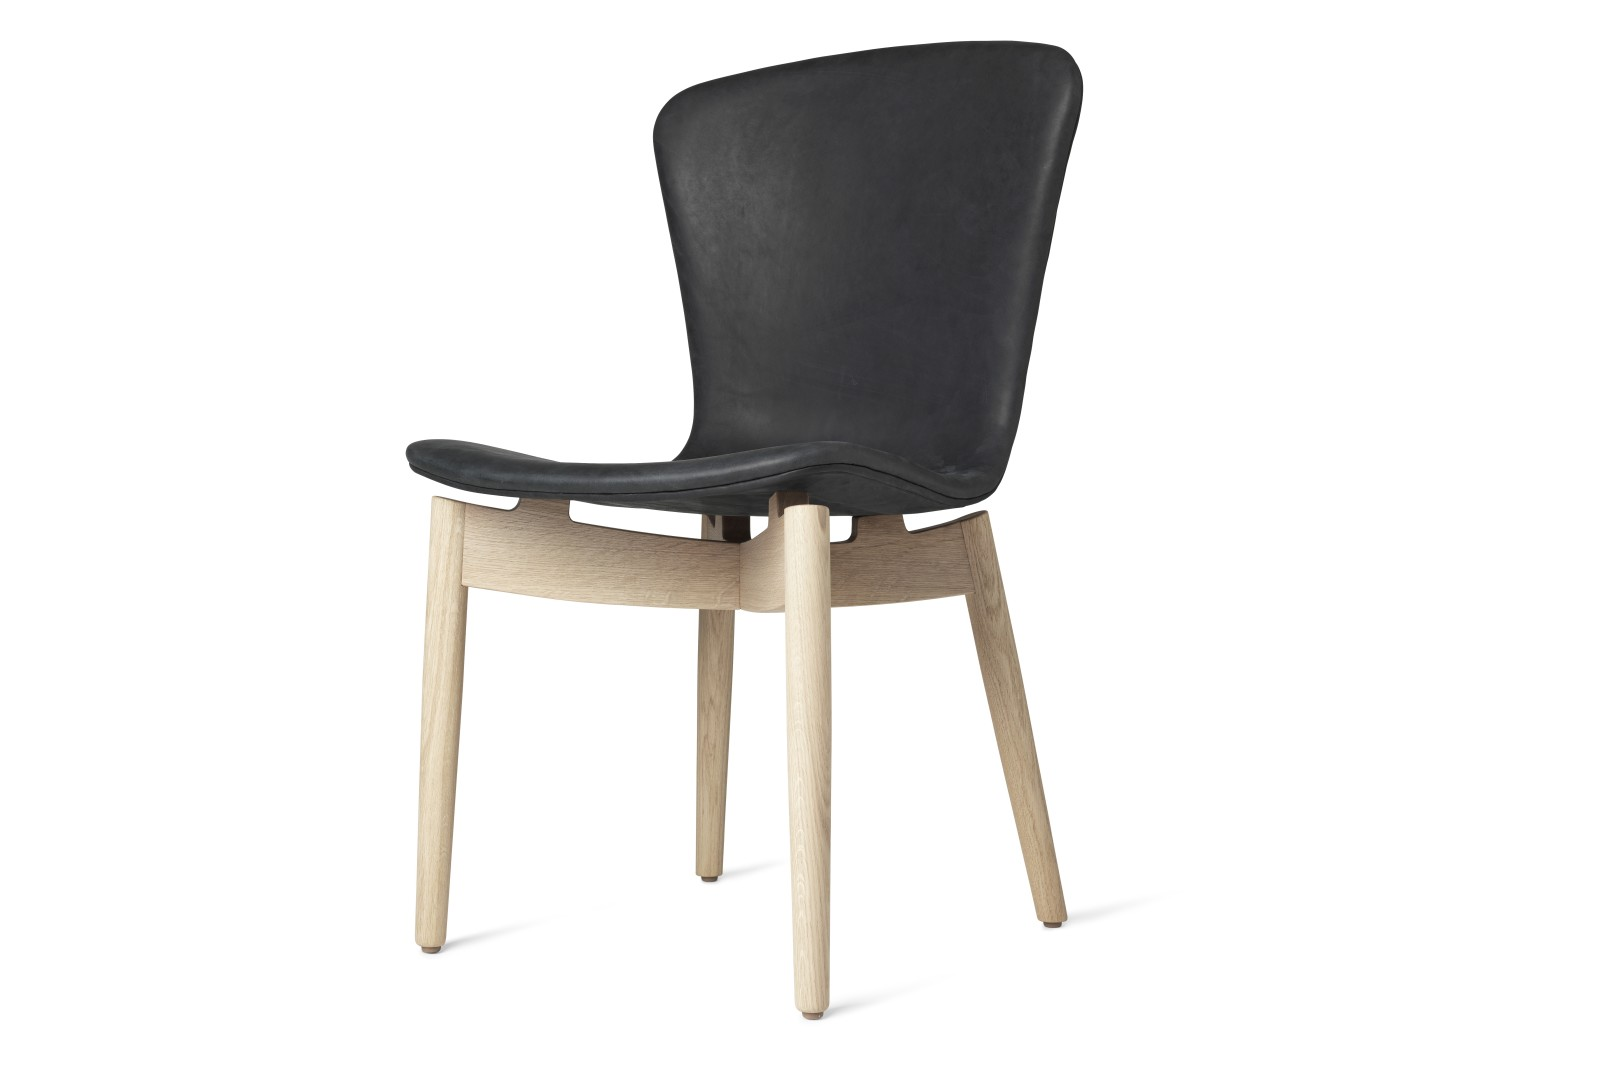 Shell Dining Chair Dunes Anthrazit Black Leather, Matt Lacquered